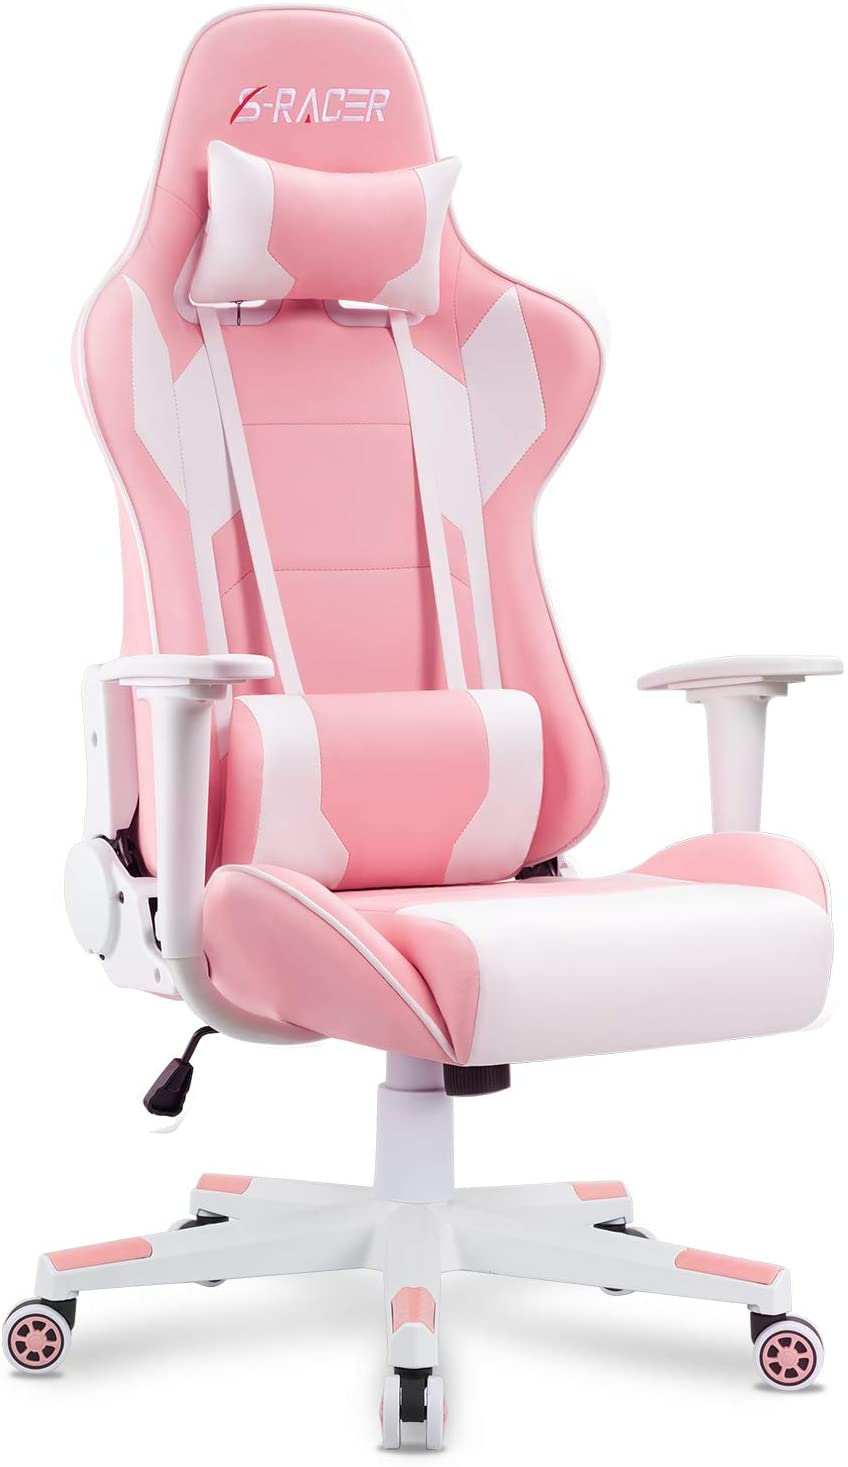 Homall Gaming Chair Office Chair High Back Computer Chair PU Leather Desk Chair PC Racing Executive Ergonomic Adjustable Swivel Task Chair with Headrest and Lumbar Support (Pink)